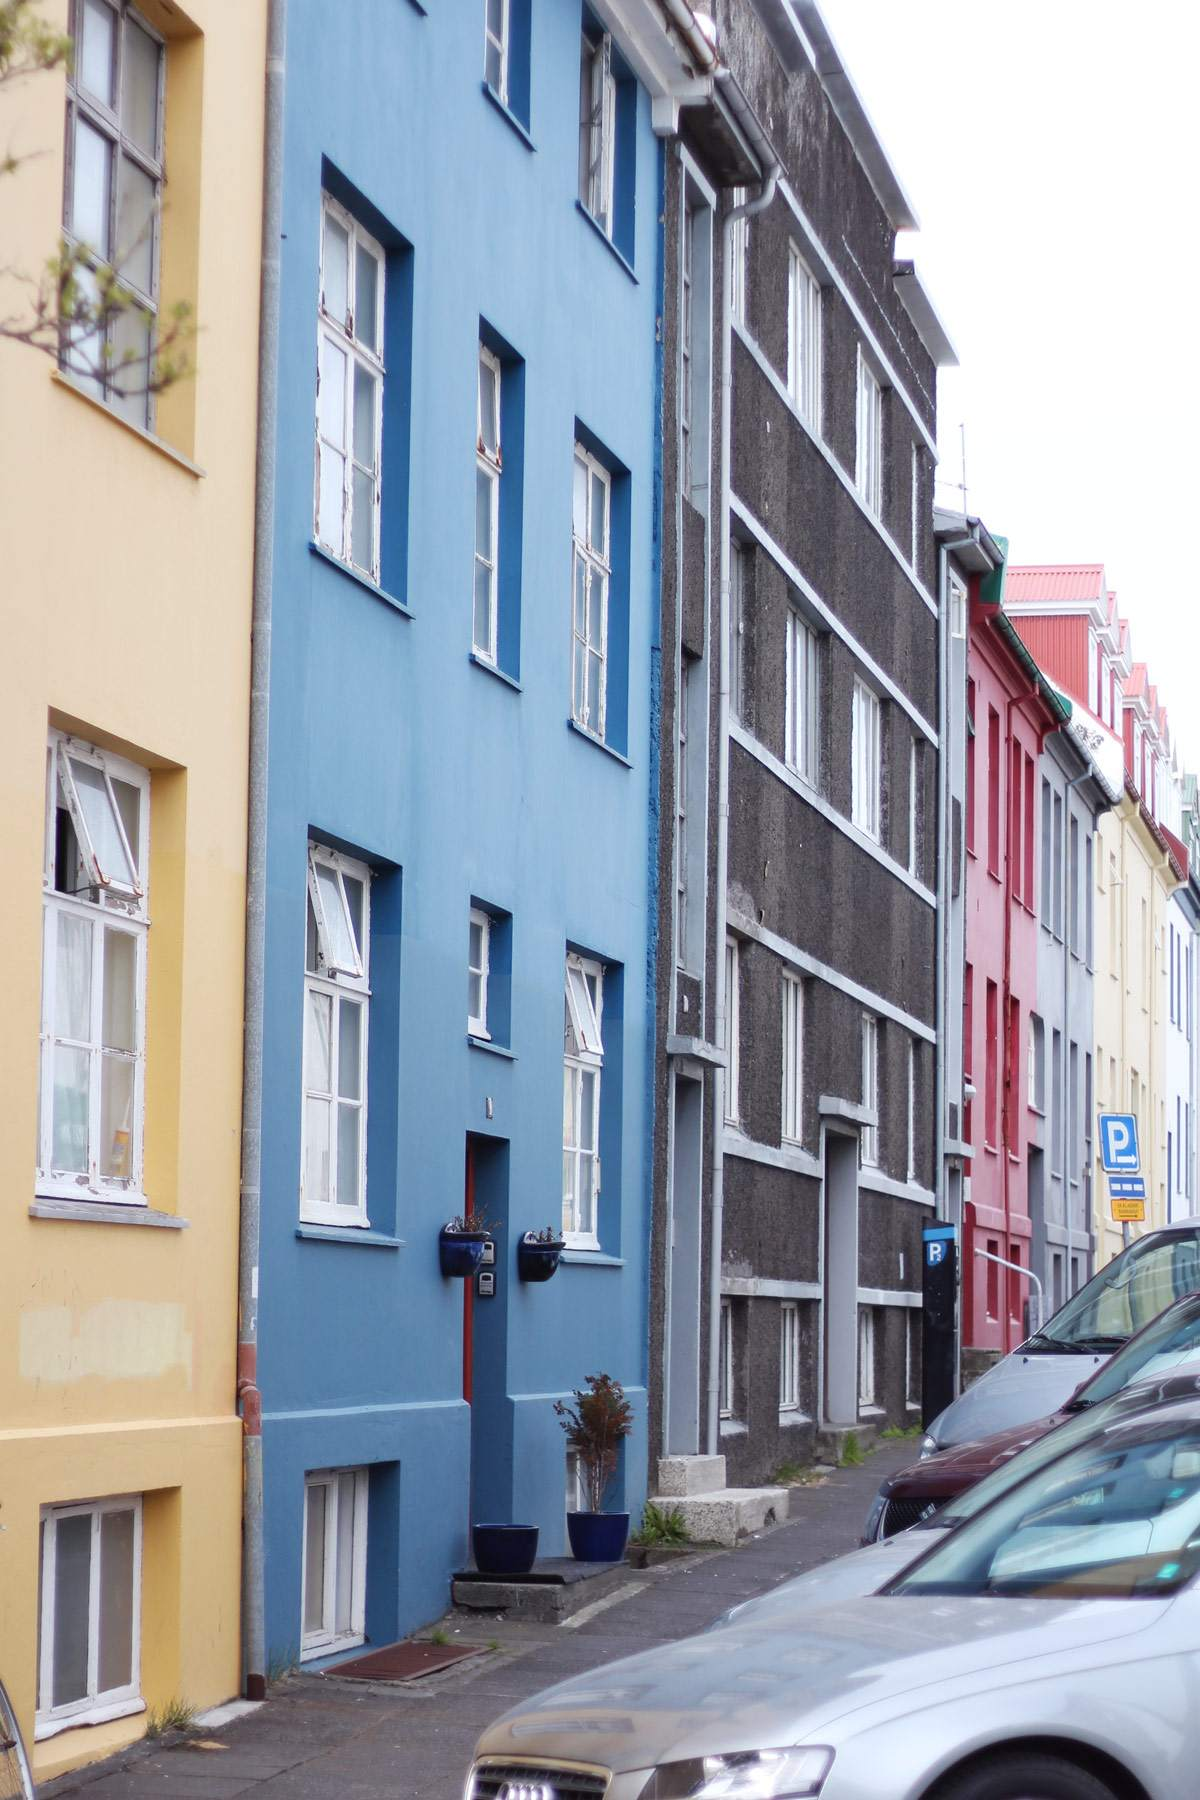 iceland-reykjavik-keflavik-review-photo-diary-travel-blog-downtown-harbour-2